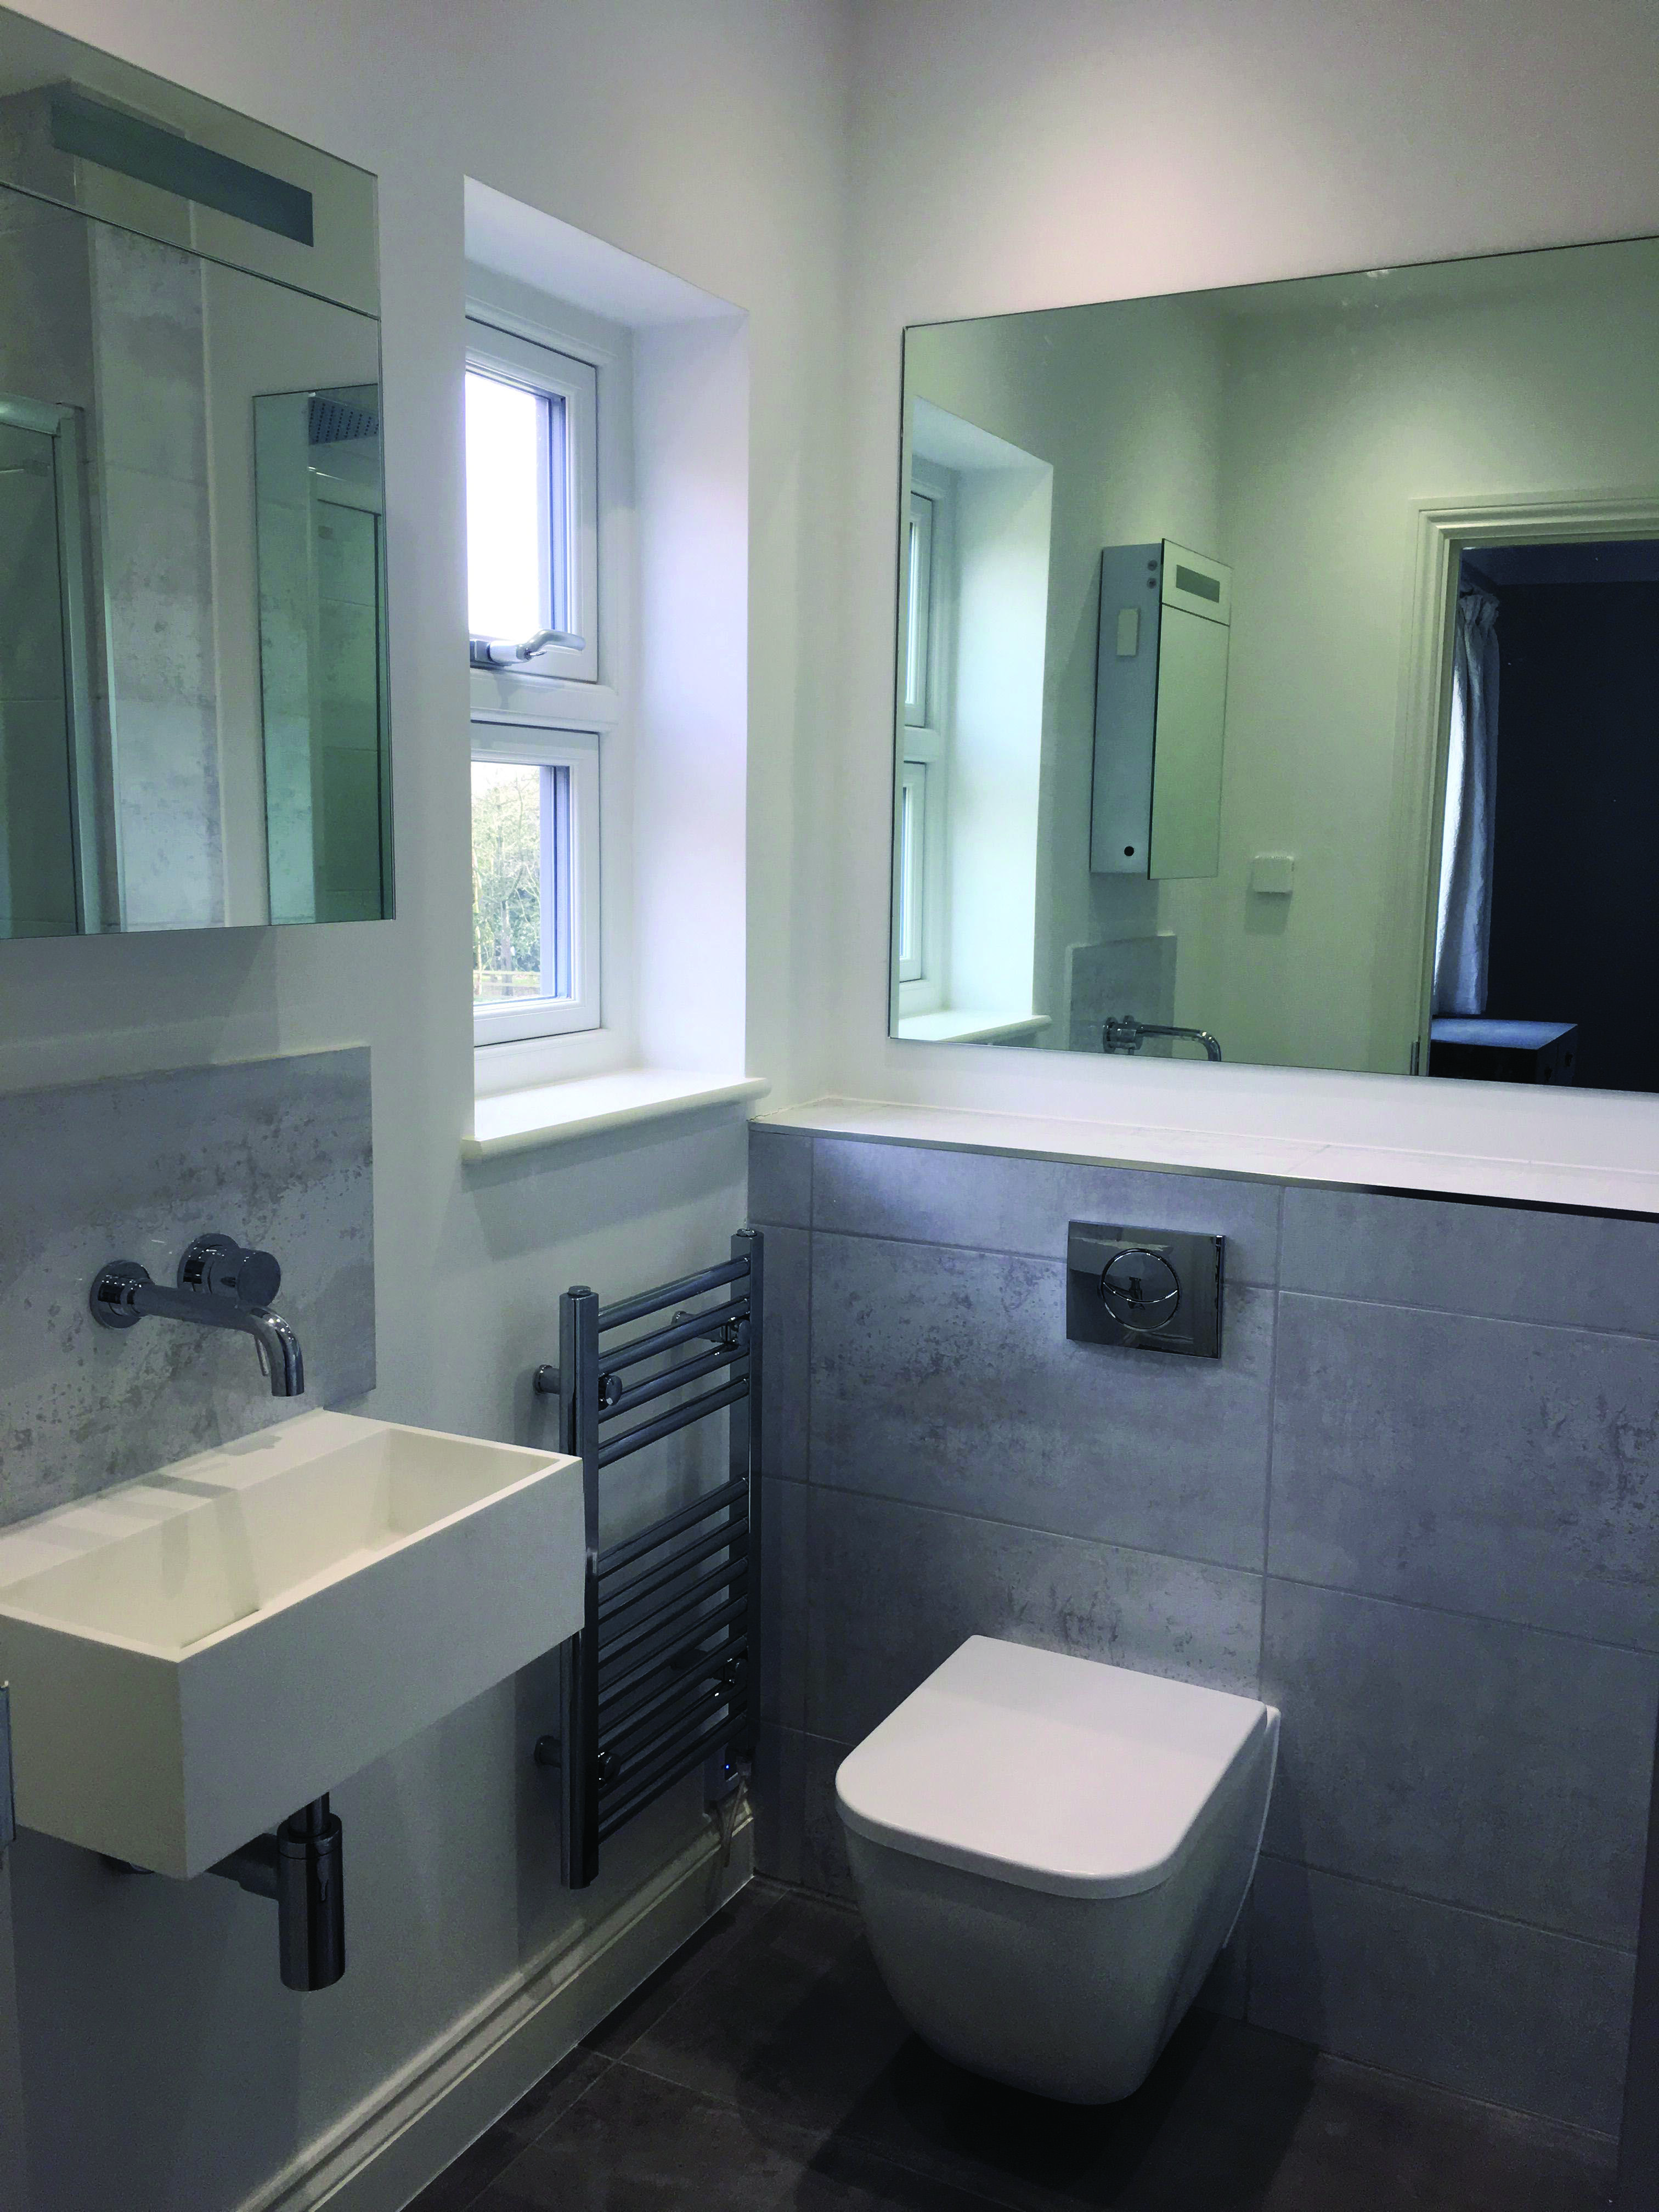 Cloakroom Ideas That Make The Most Of Your Small Space And